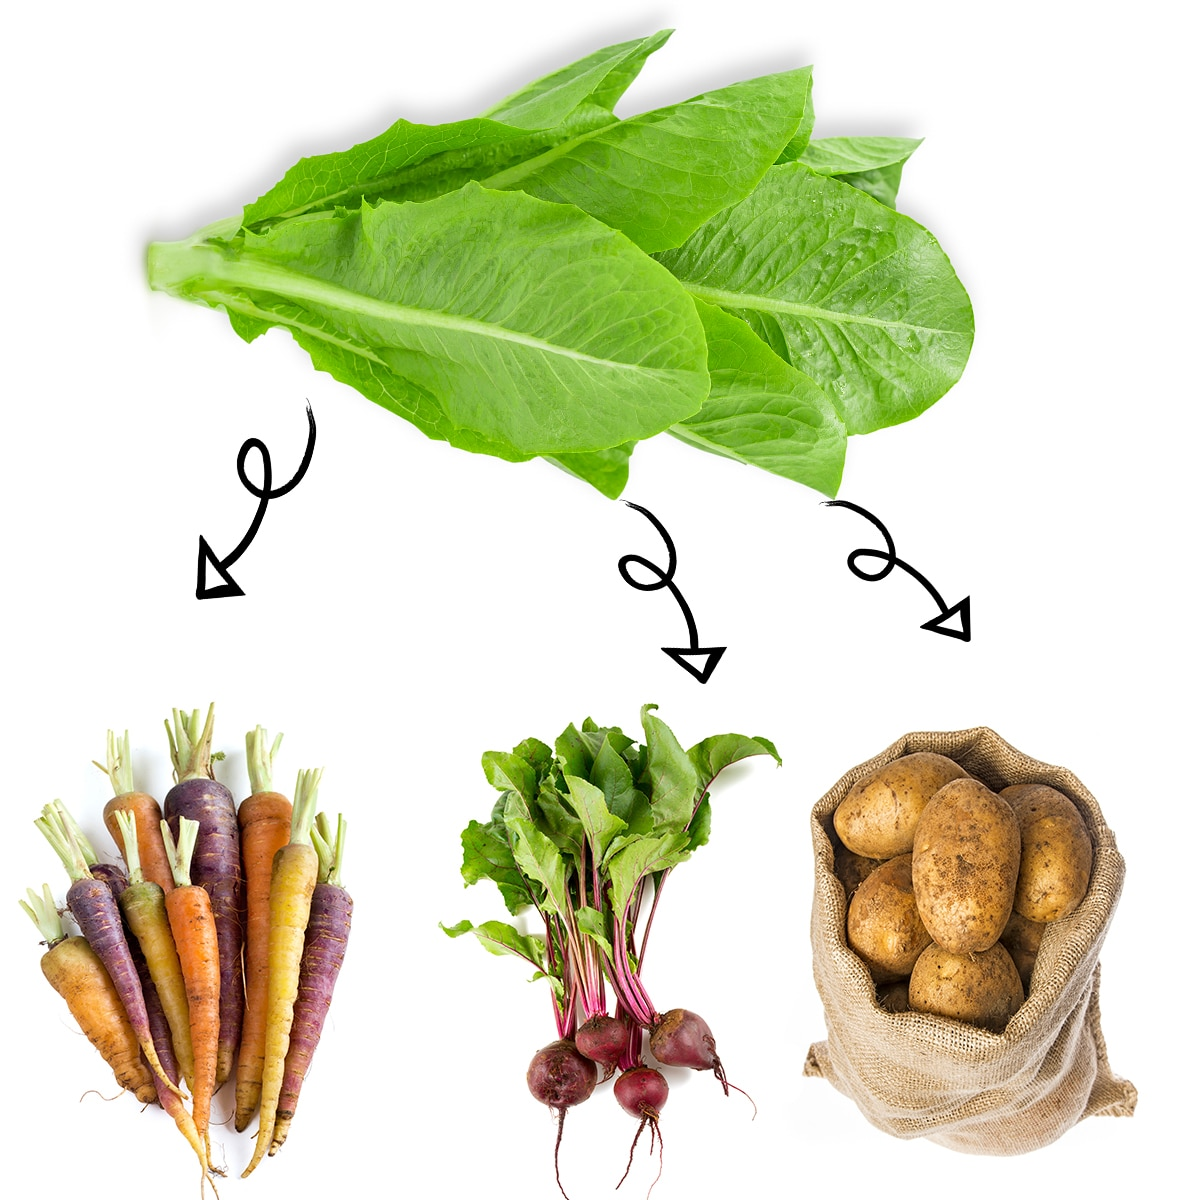 Bright white graphic of lettuce leaves with arrows linking it to carrots, a bundle of beets, and a sack of russet potatoes.